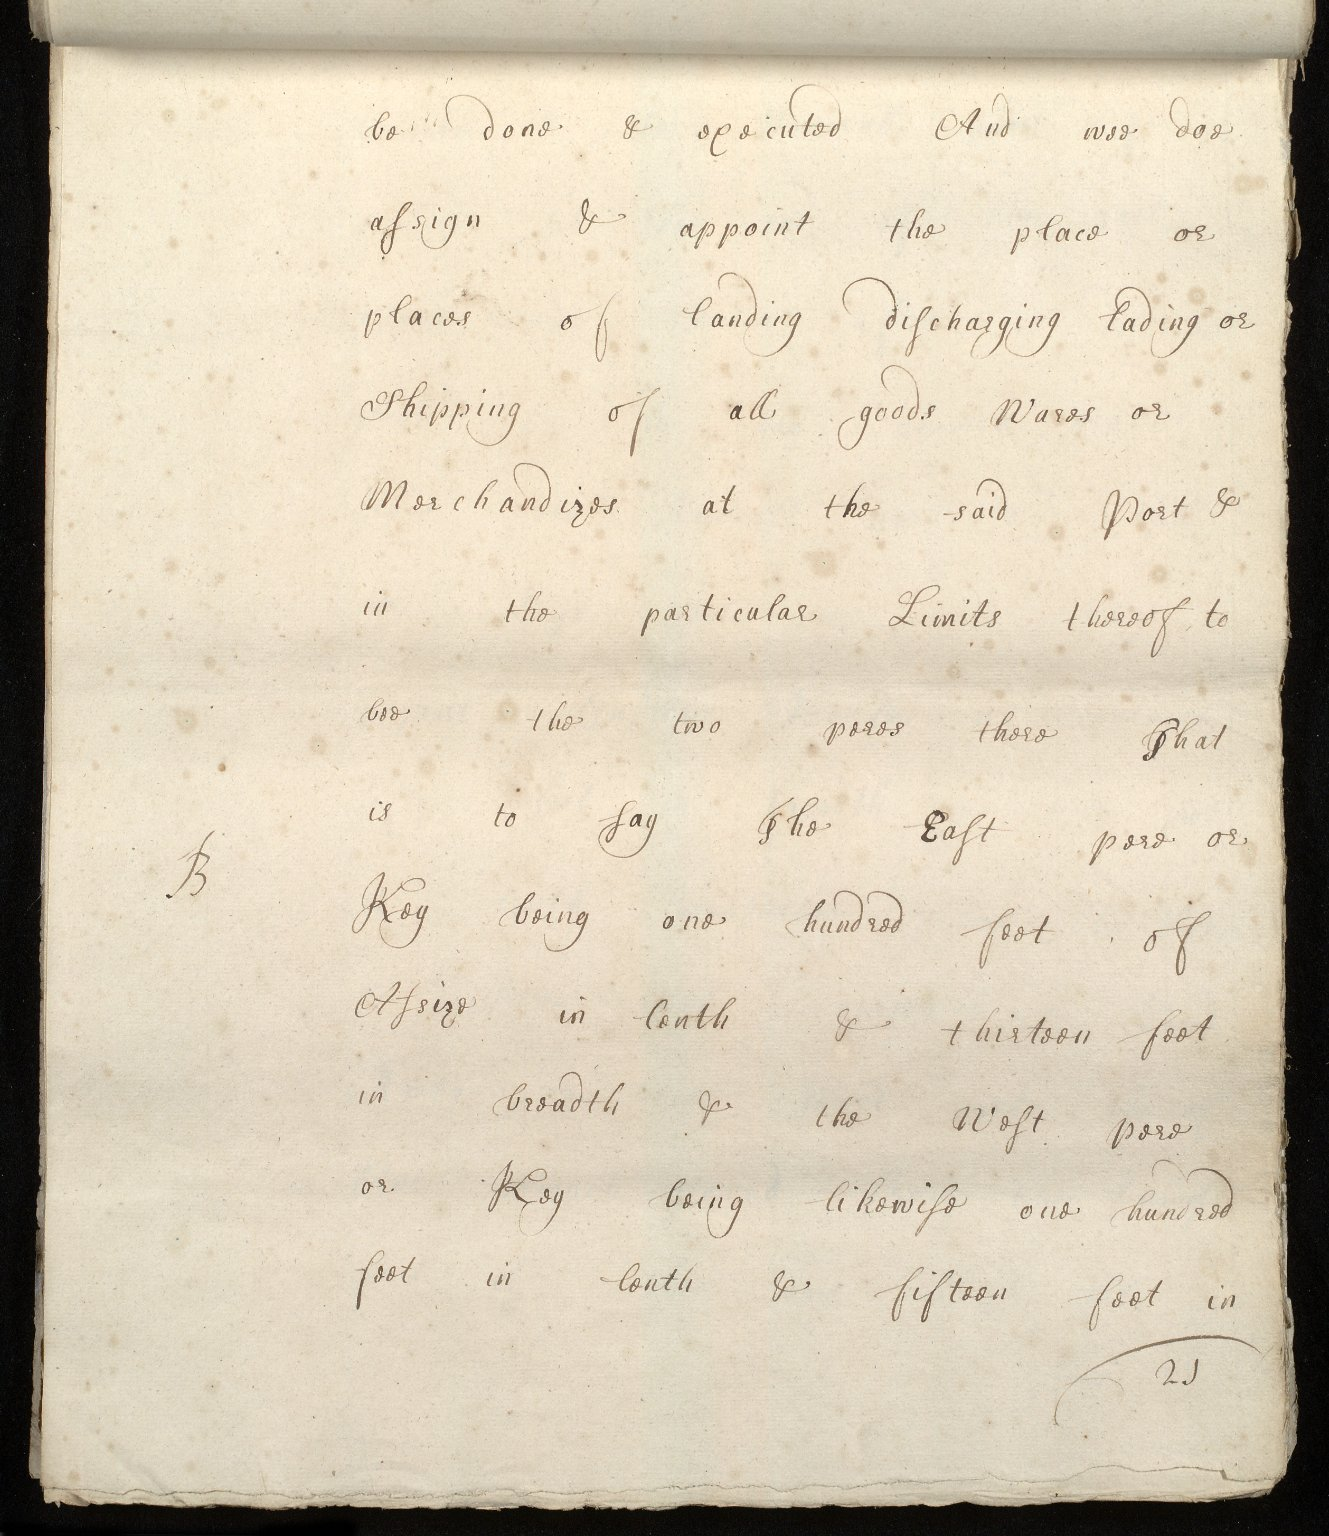 [Commission by Queen Anne to John Adair and others to appoint the town of Borrowstounness (Bo'ness) to be a port and to fix the bounds thereof] [21 of 39]